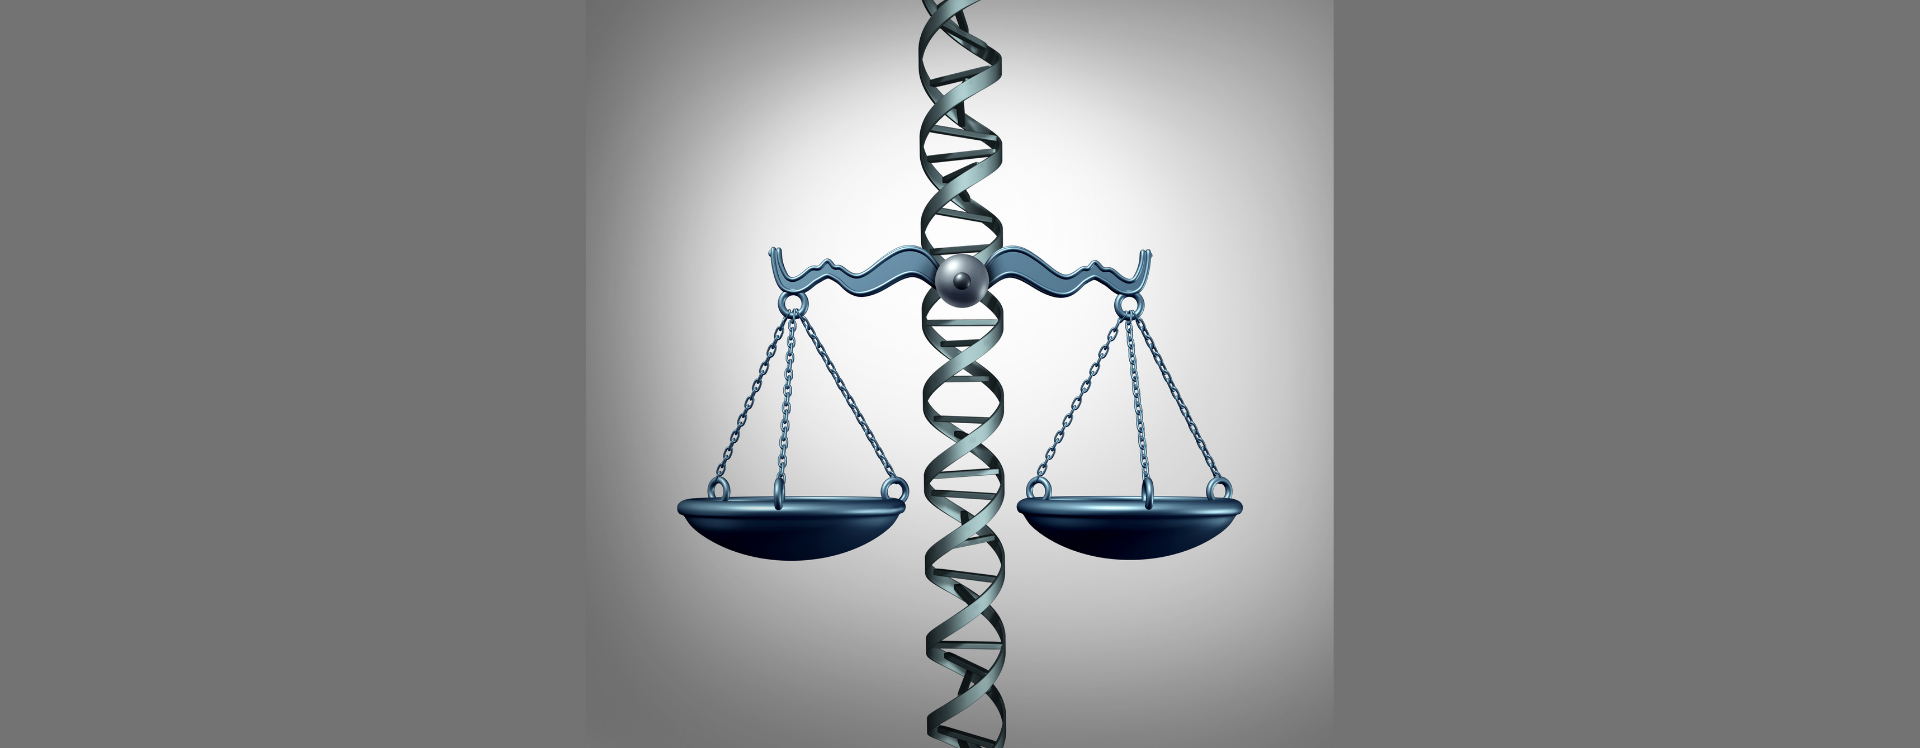 The Affinity Column: How Bioethics Impacts Biotechnology Practices and Discoveries